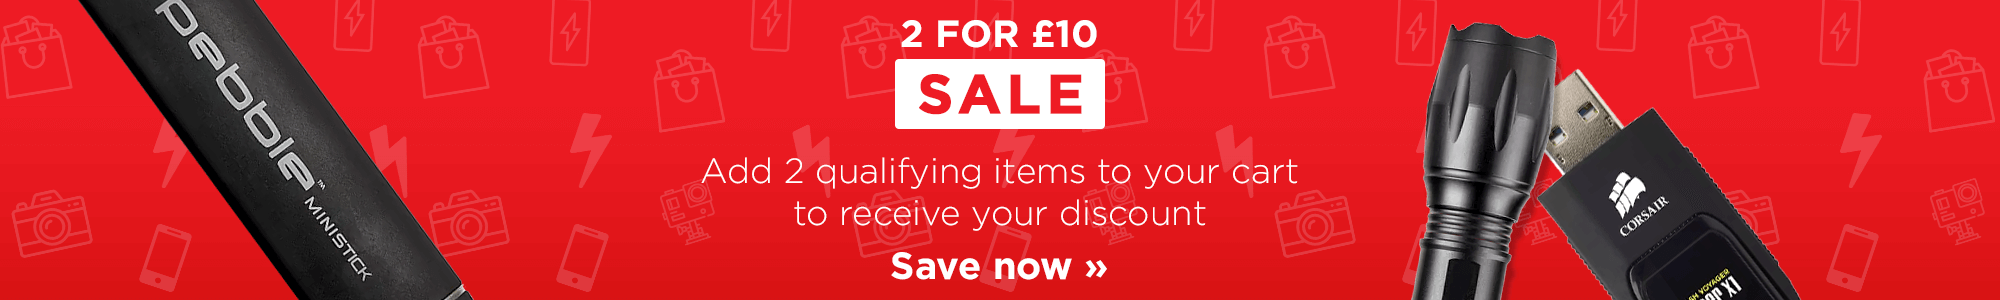 2 for £10 SALE on selected items!